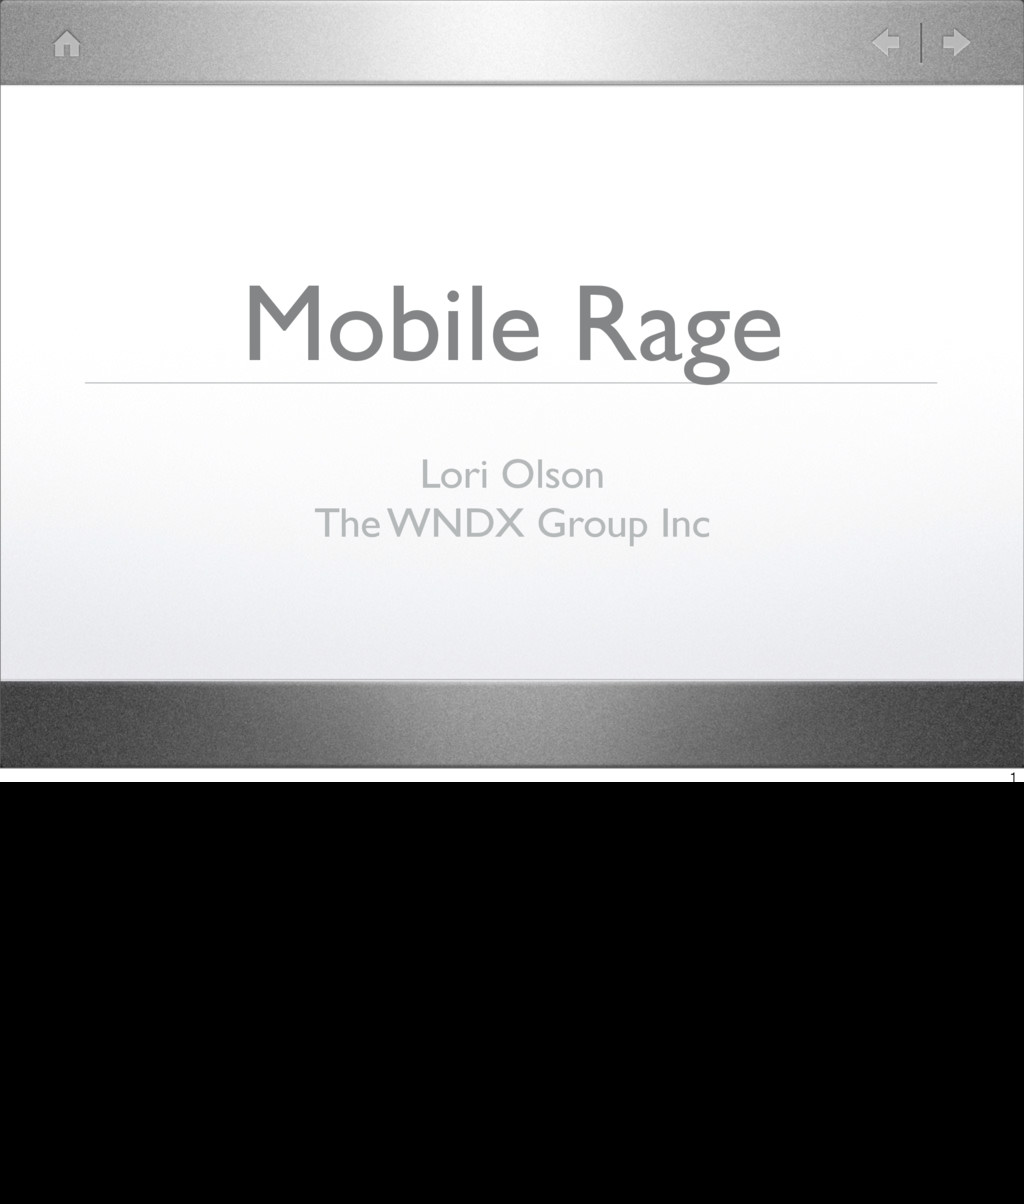 Mobile Rage Lori Olson The WNDX Group Inc 1